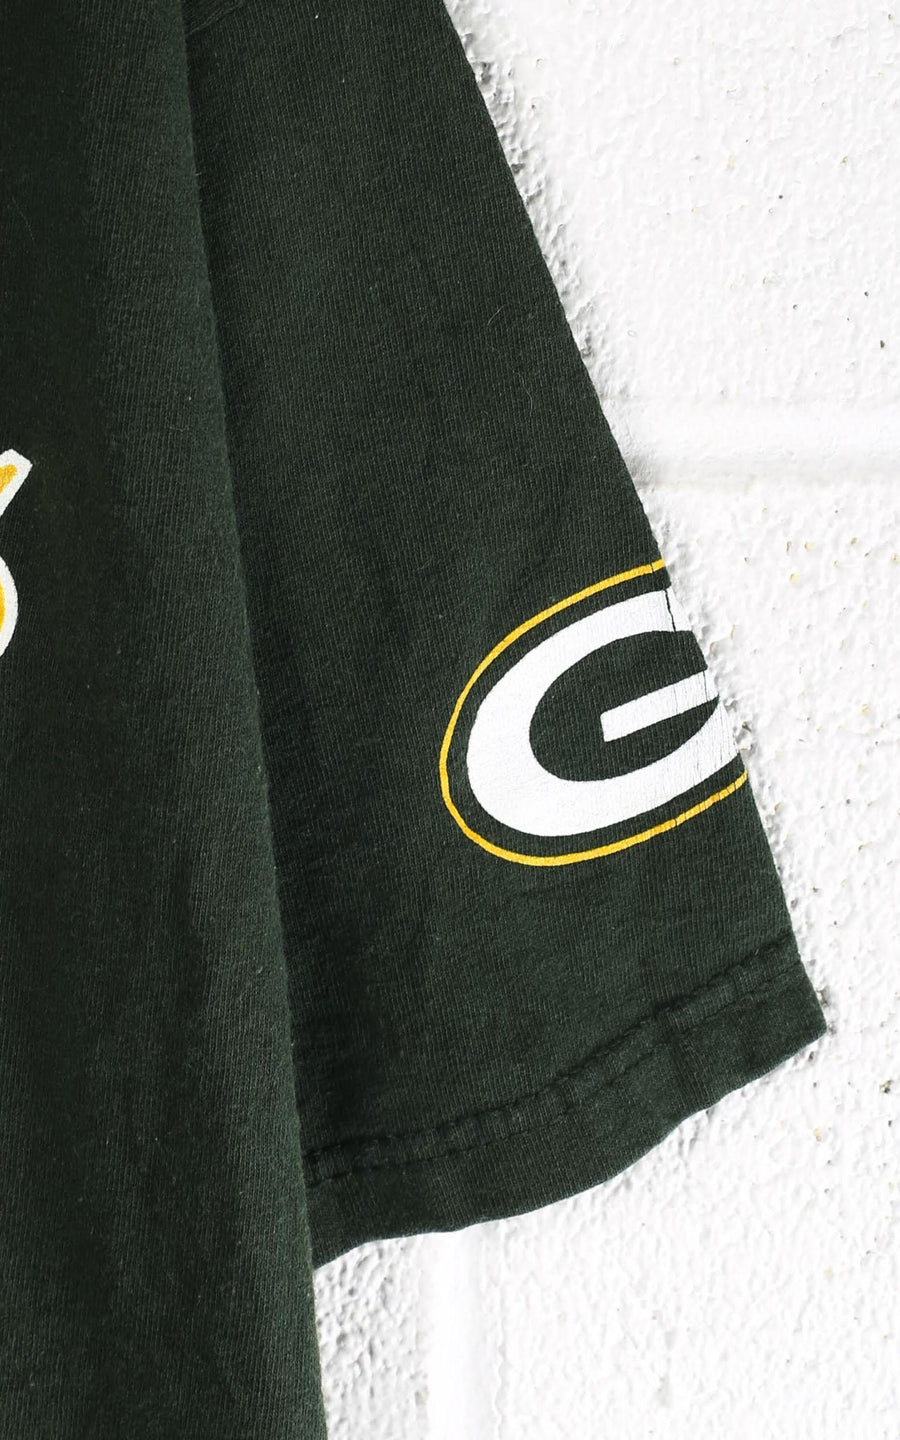 Vintage Green Bay Packers Tee